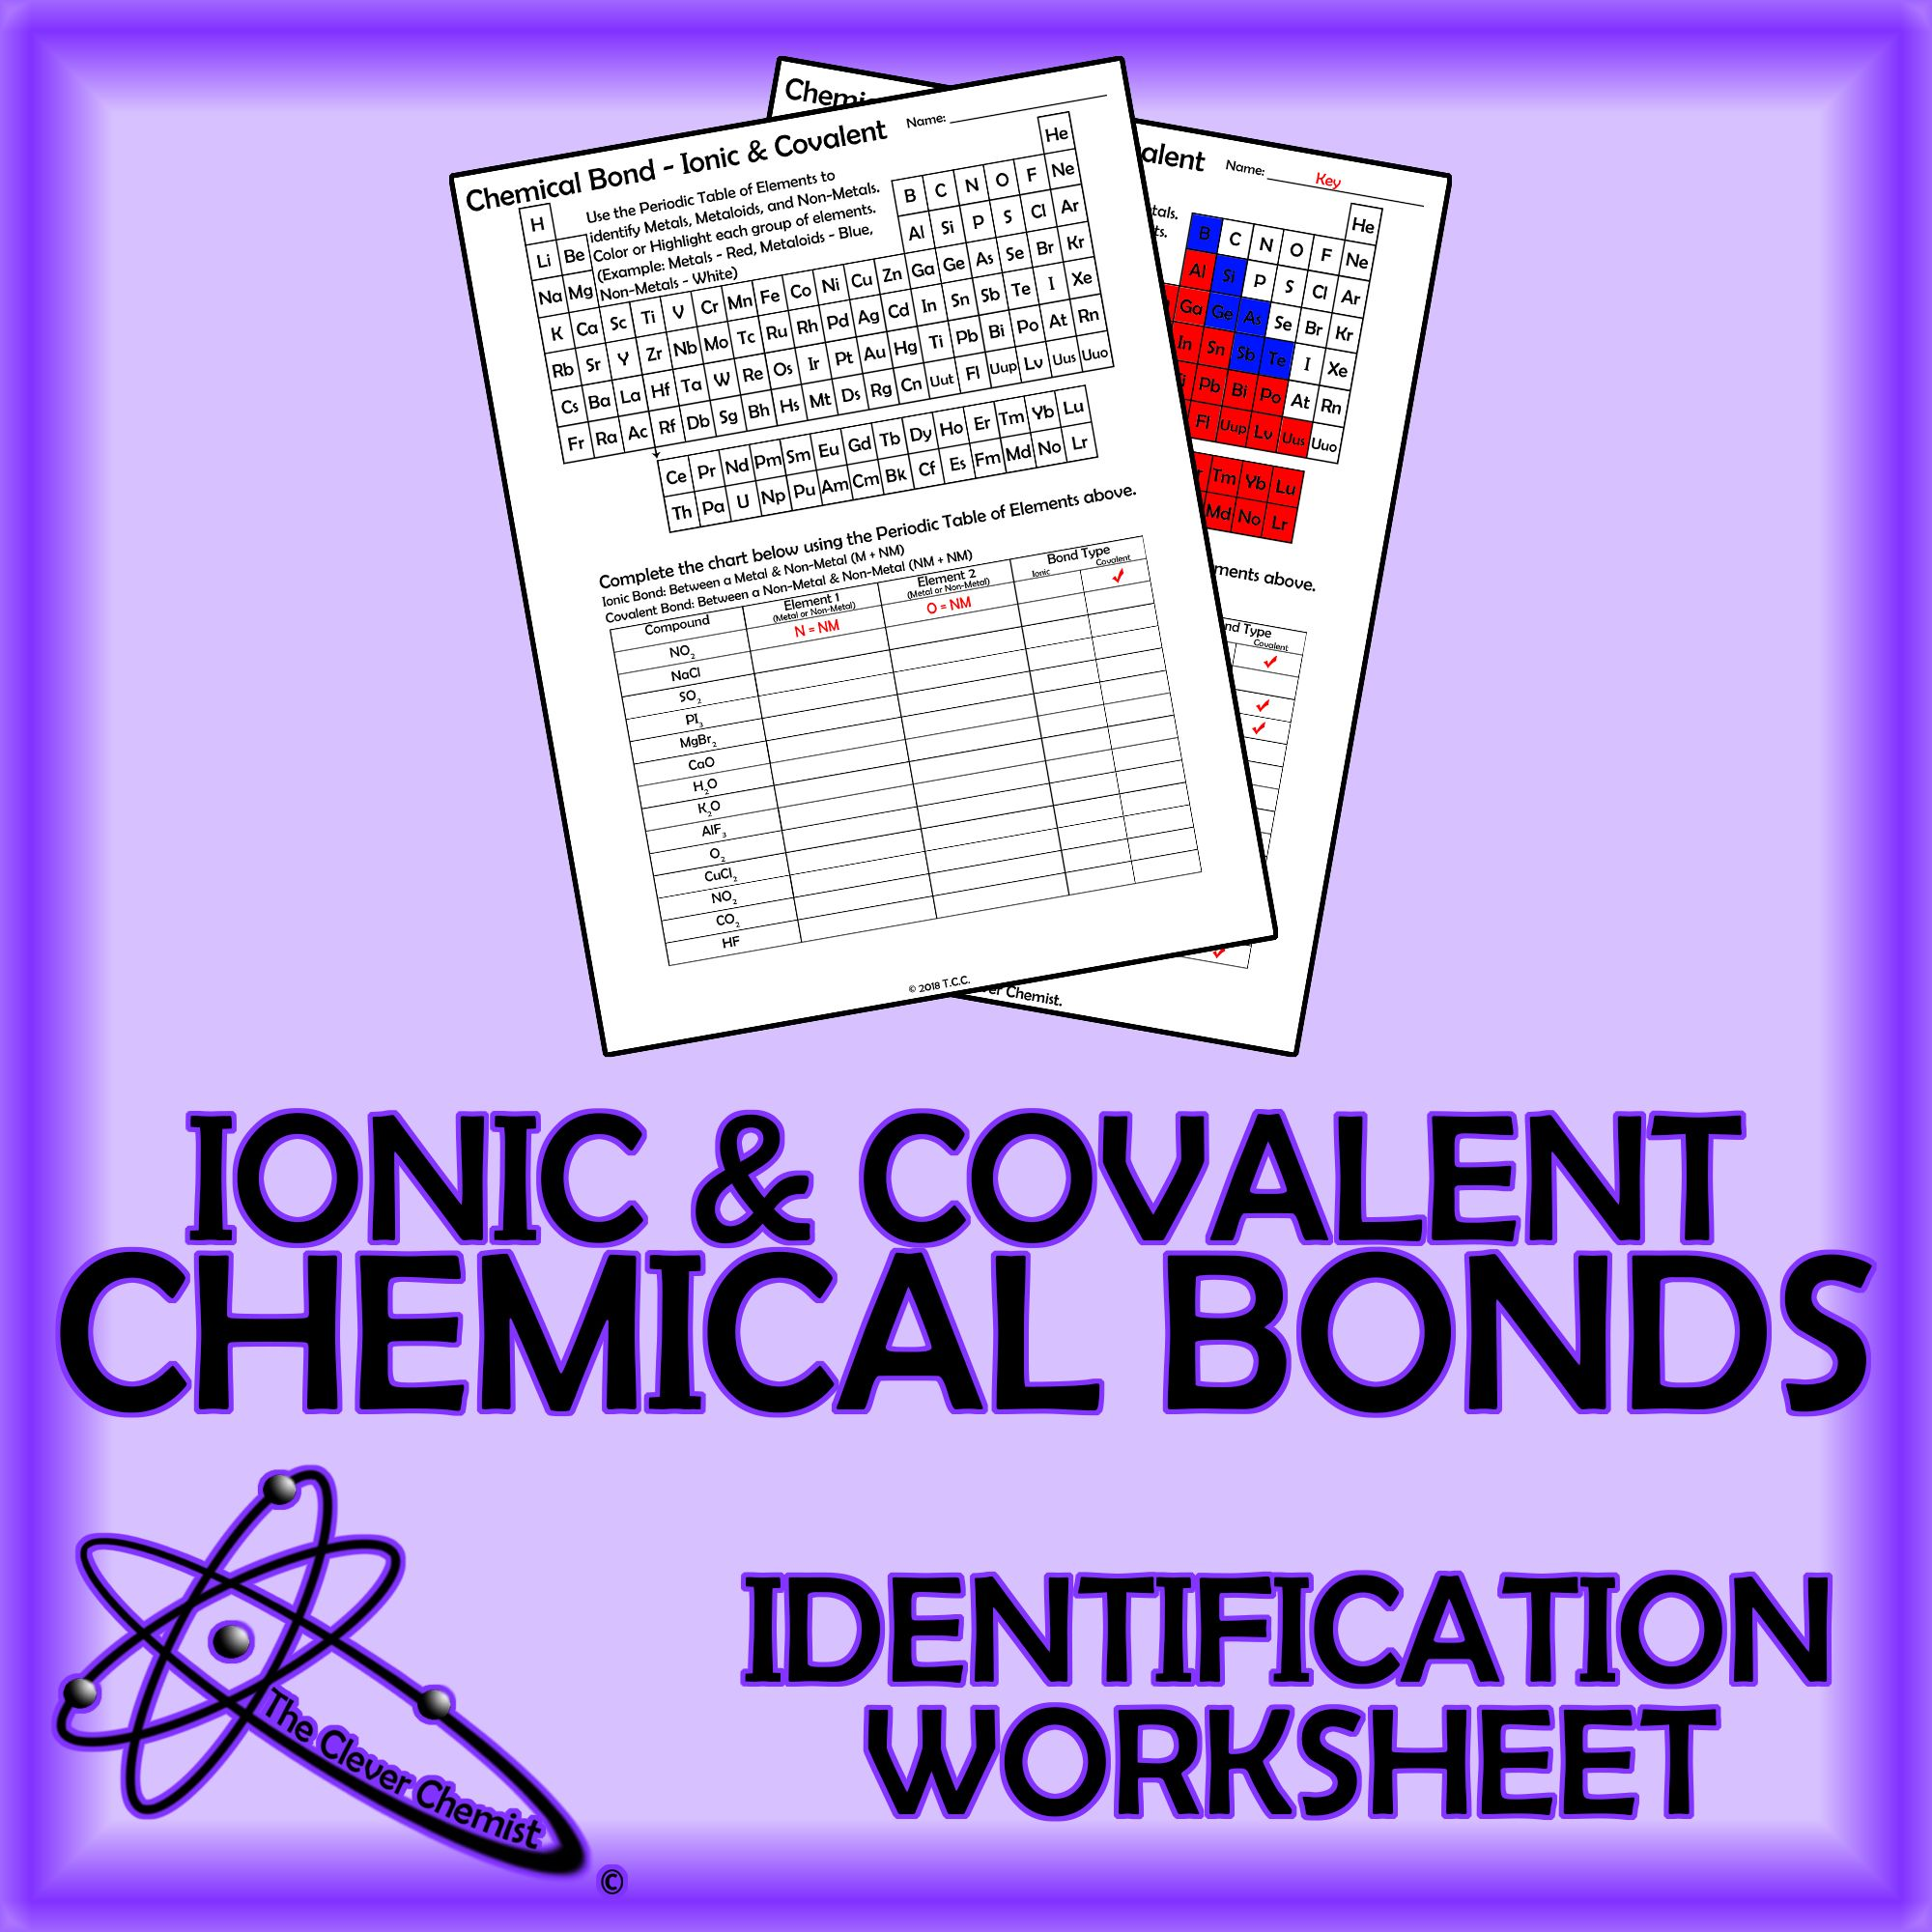 This Is A One Page Worksheet Covering Identification Of Metals Metaloids And Non Metals On The Peri Covalent Bonding Covalent Bonding Worksheet Chemical Bond